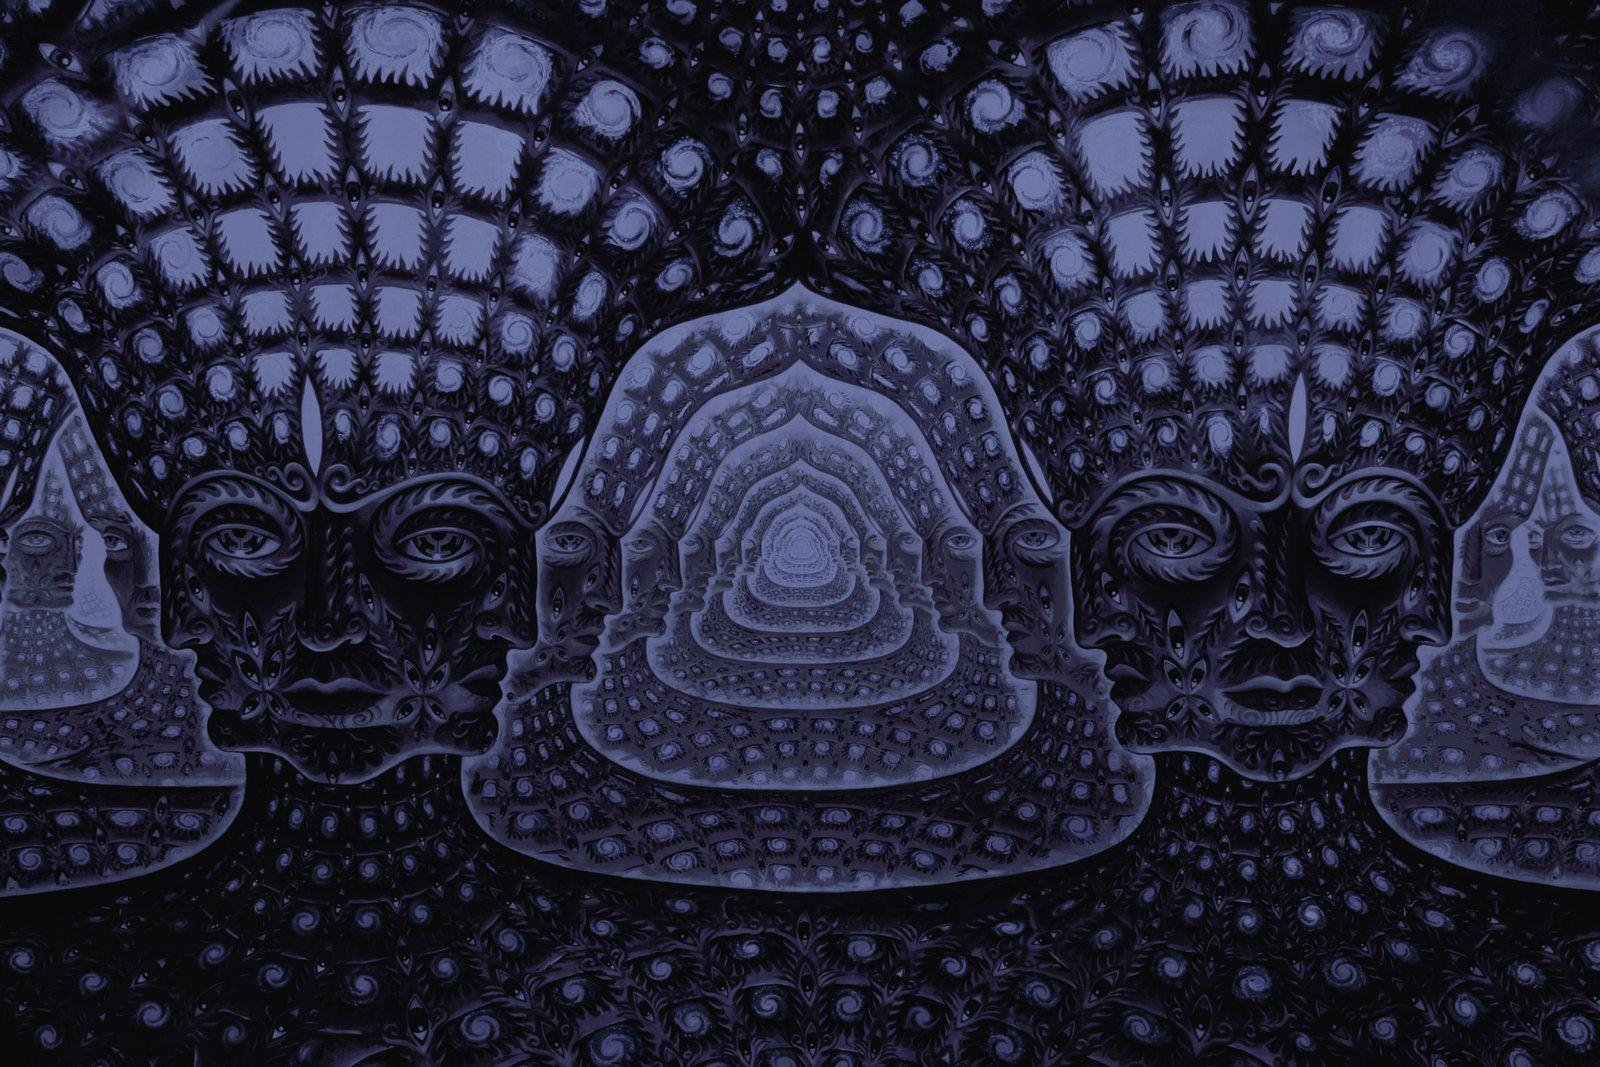 Tool Band Wallpapers - Wallpaper Cave